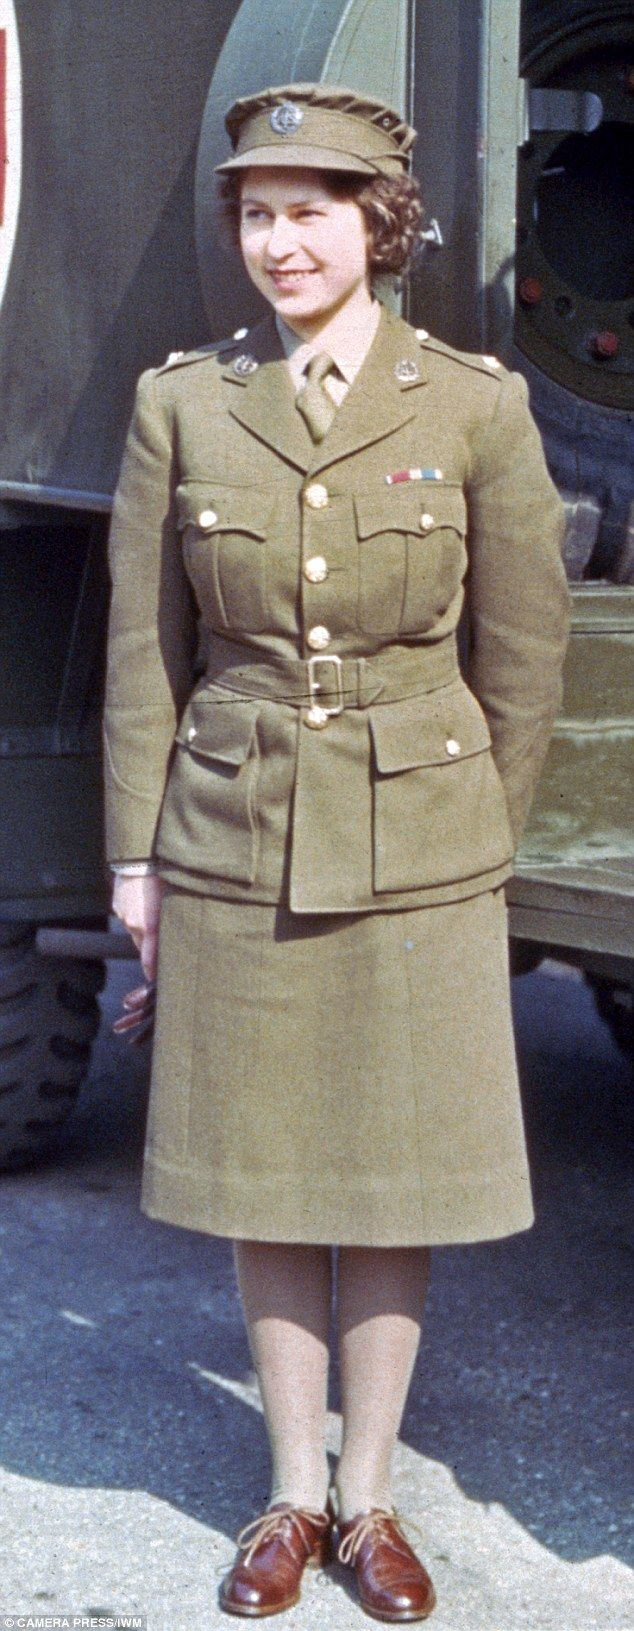 THIS image of our Queen in wartime will outlive her Nazi salute #dailymail